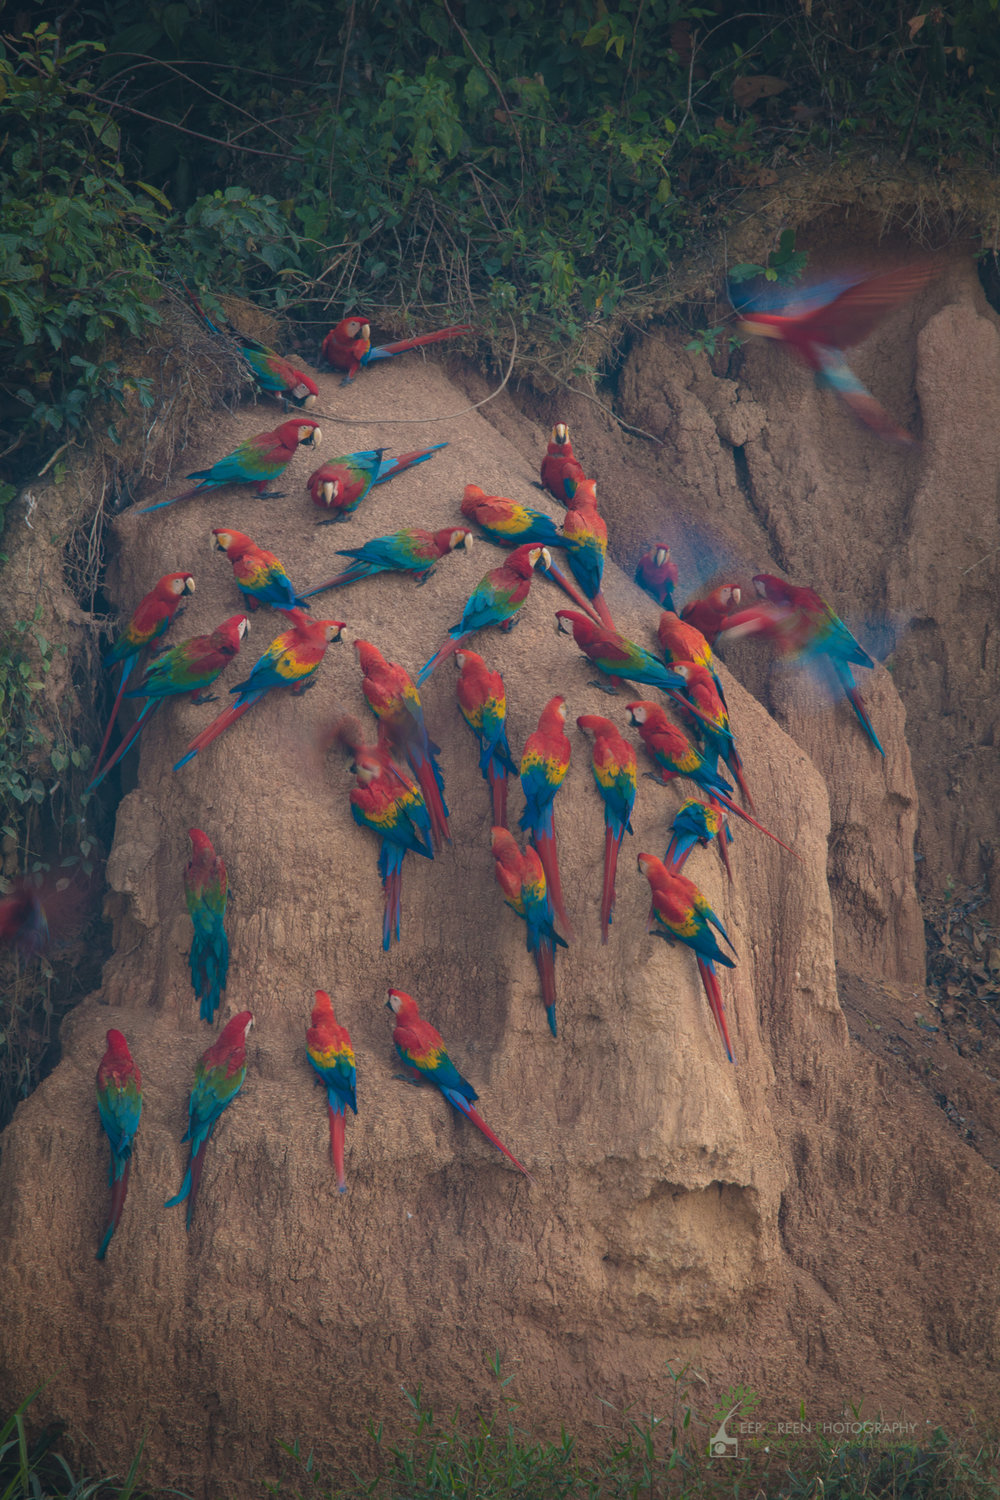 Red and Green Macaws eating from a clay lick, Amazon, Peru